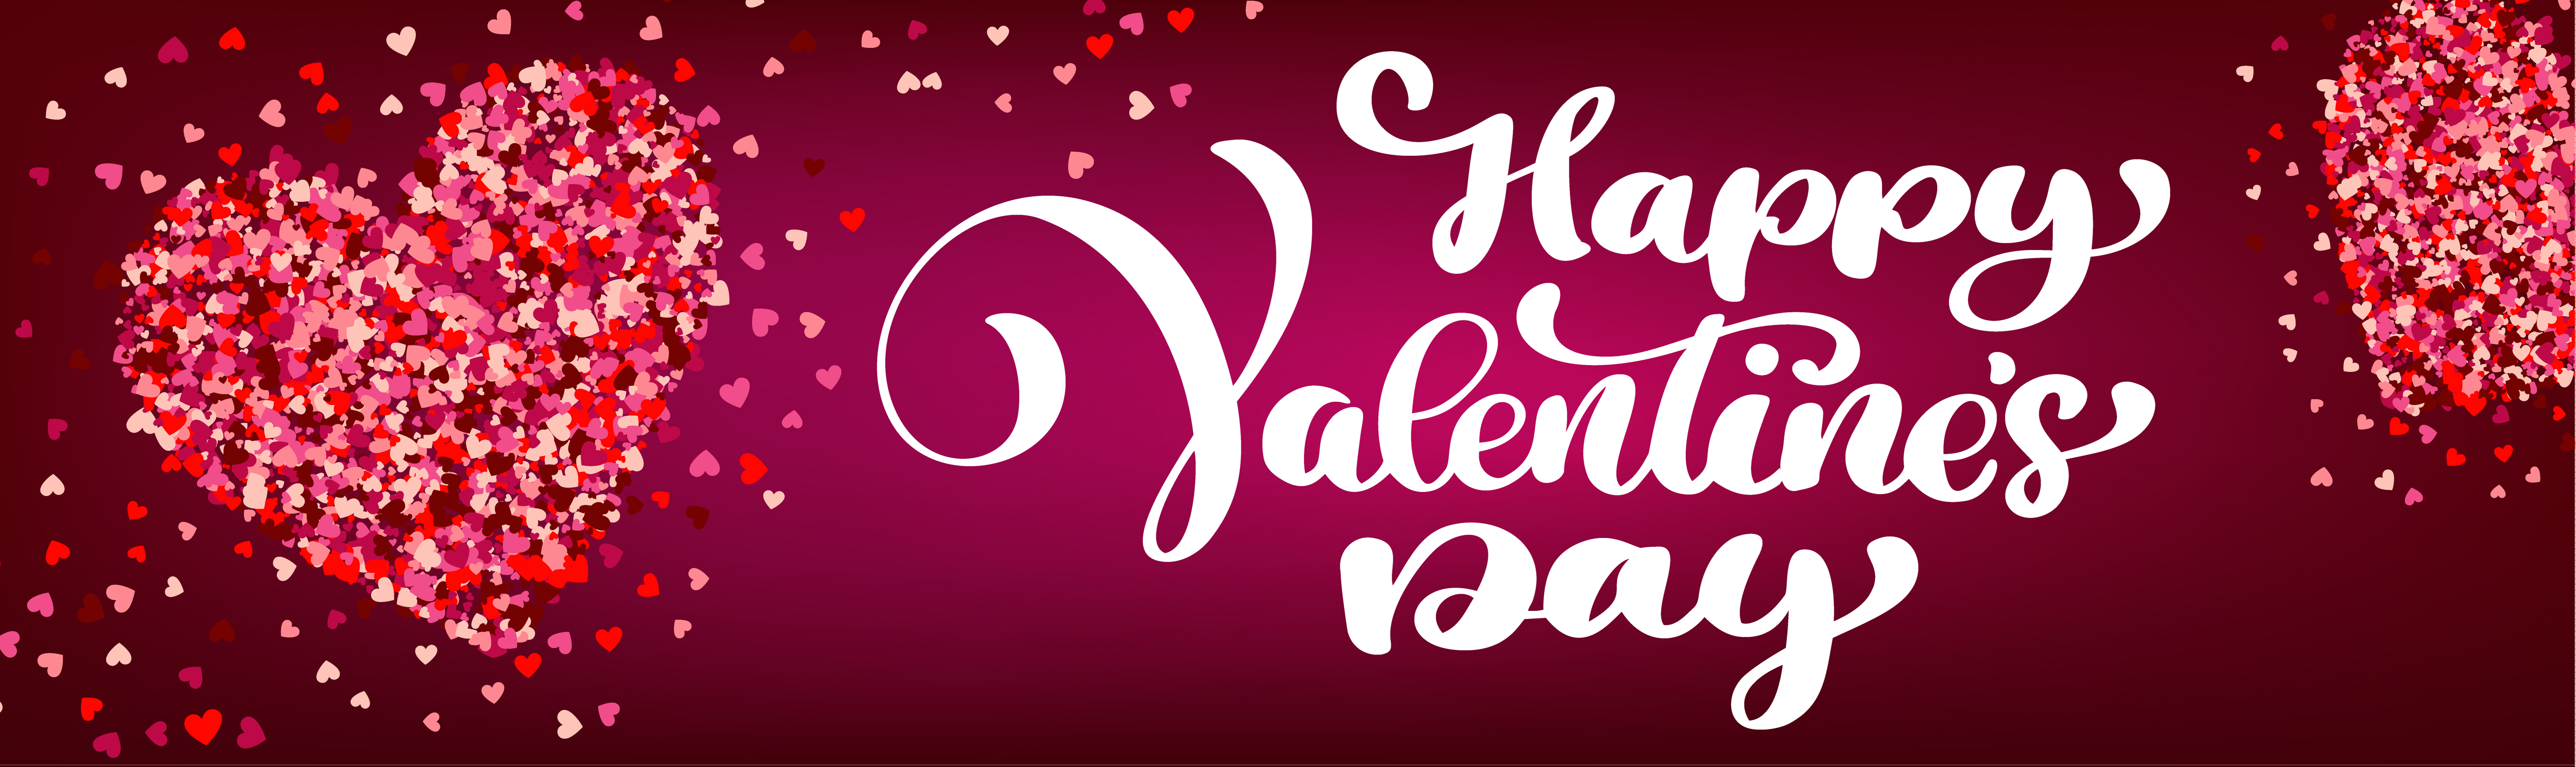 Text lettering Happy Valentines day banners - Download ...